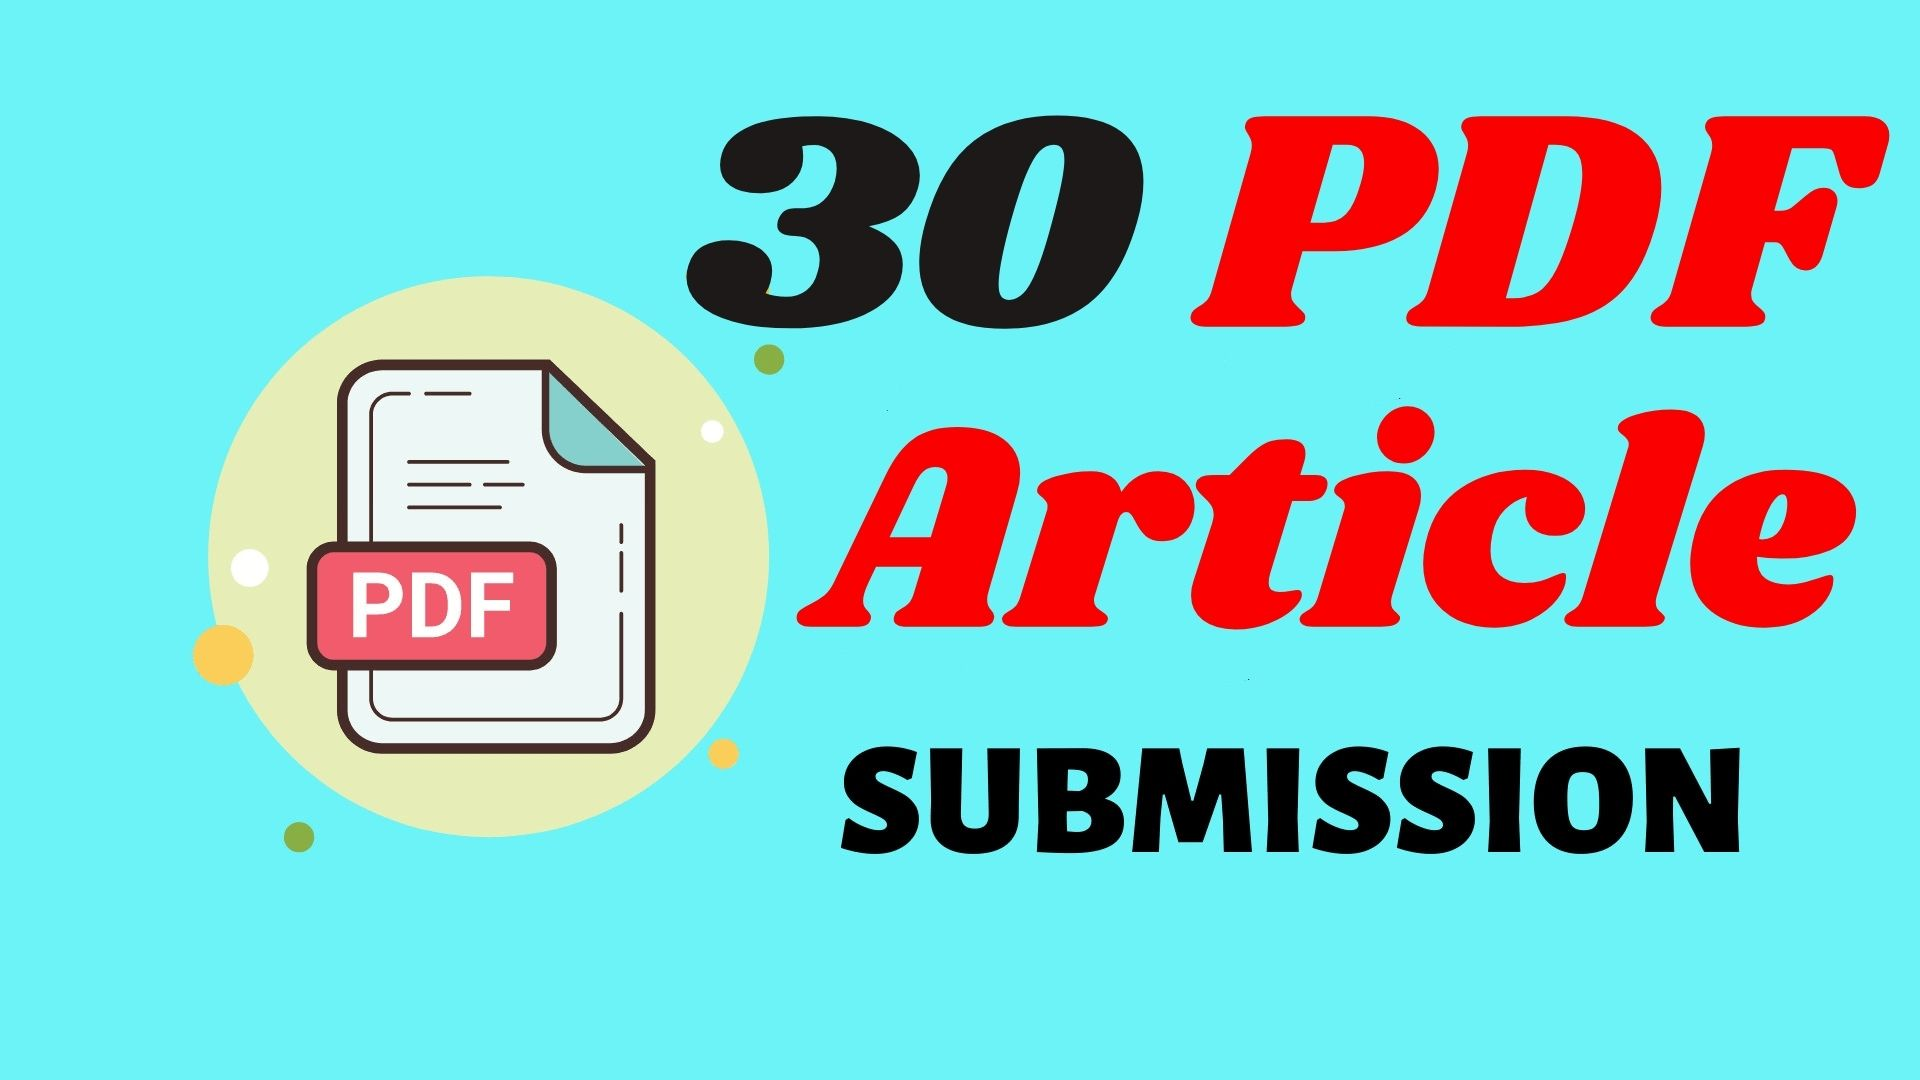 I will do manually pdf submission to top 30 pdf sharing sites for perfect seo link building